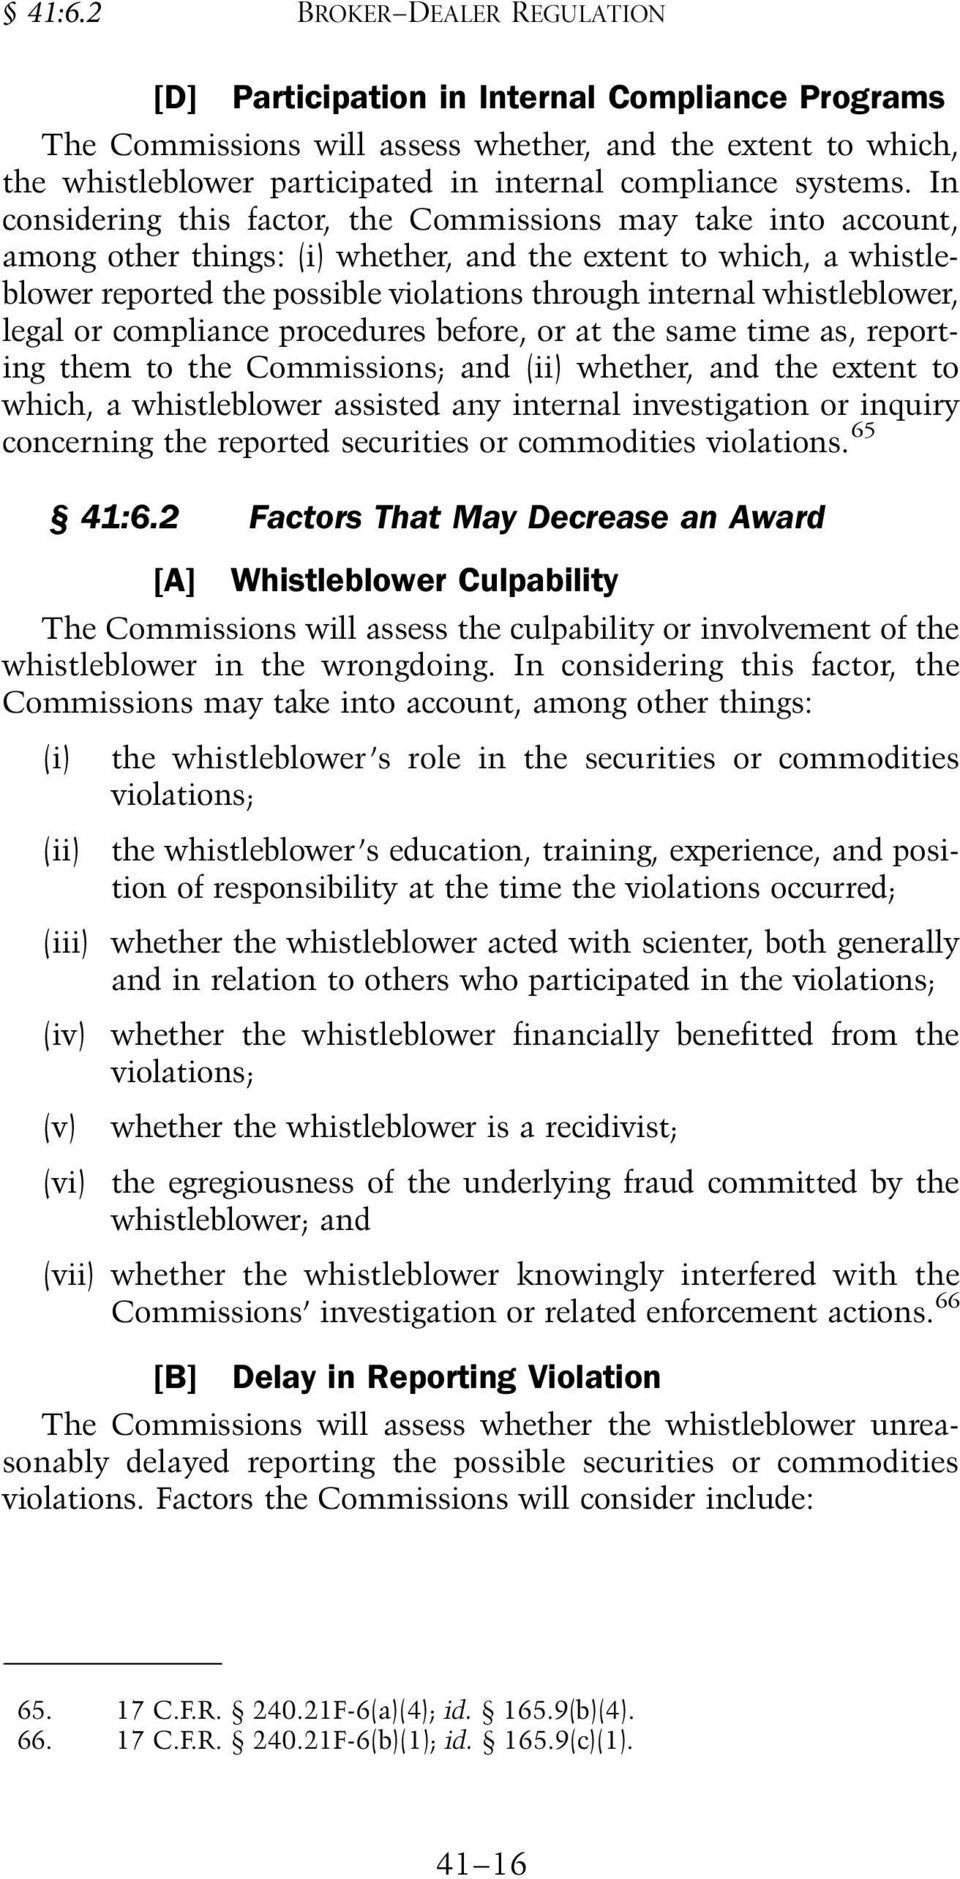 In considering this factor, the Commissions may take into account, among other things: (i) whether, and the extent to which, a whistleblower reported the possible violations through internal